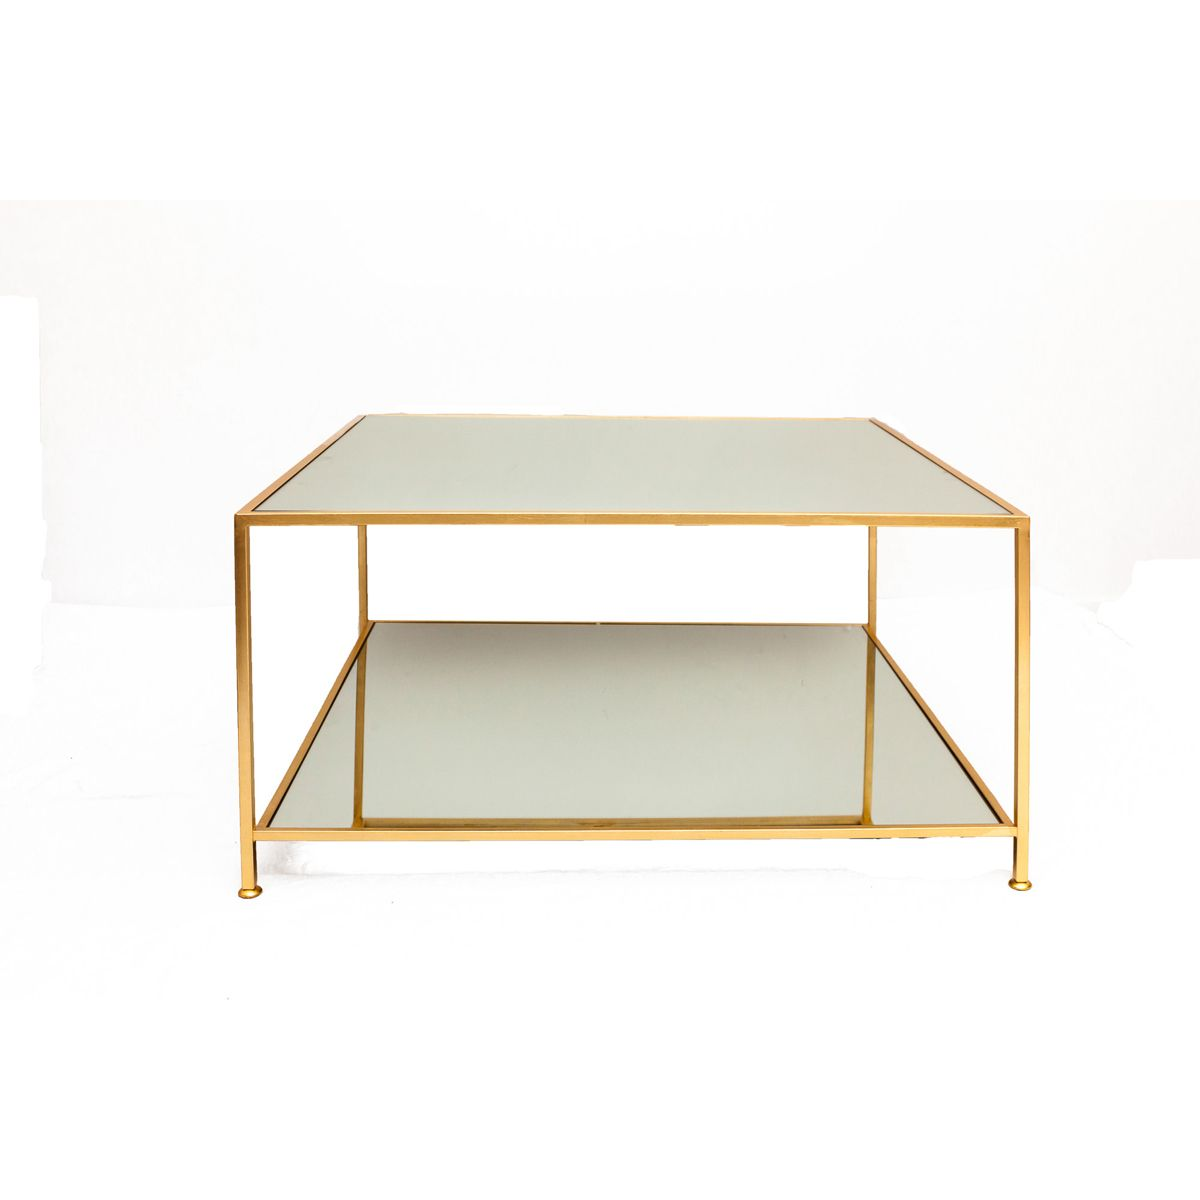 - Big Square Table (With Images) Square Mirrored Coffee Table